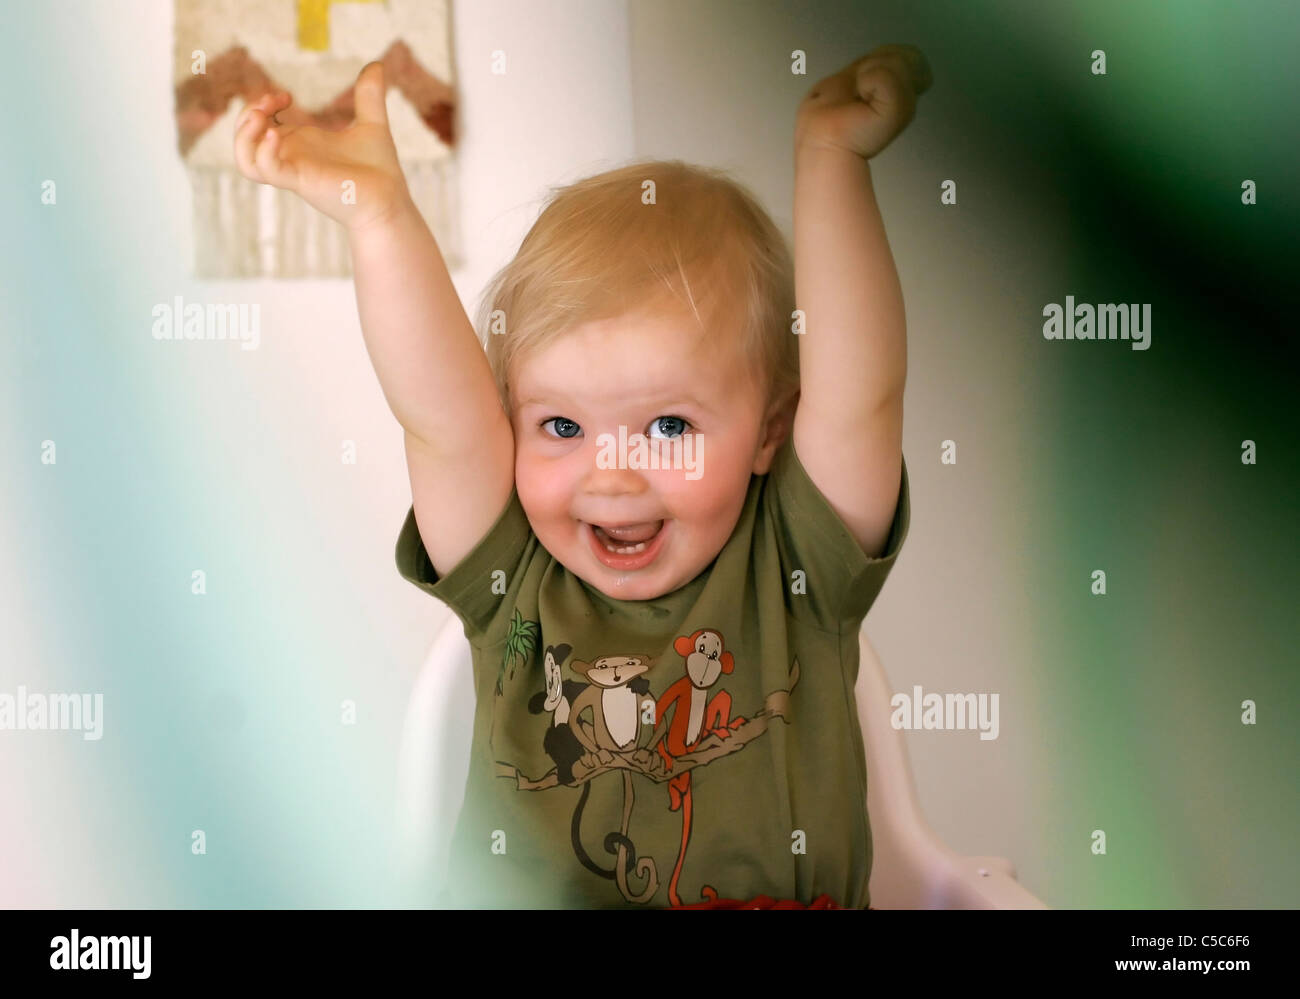 a67d55e8a59c8 Close-up portrait of a happy little girl with hands raised Stock ...